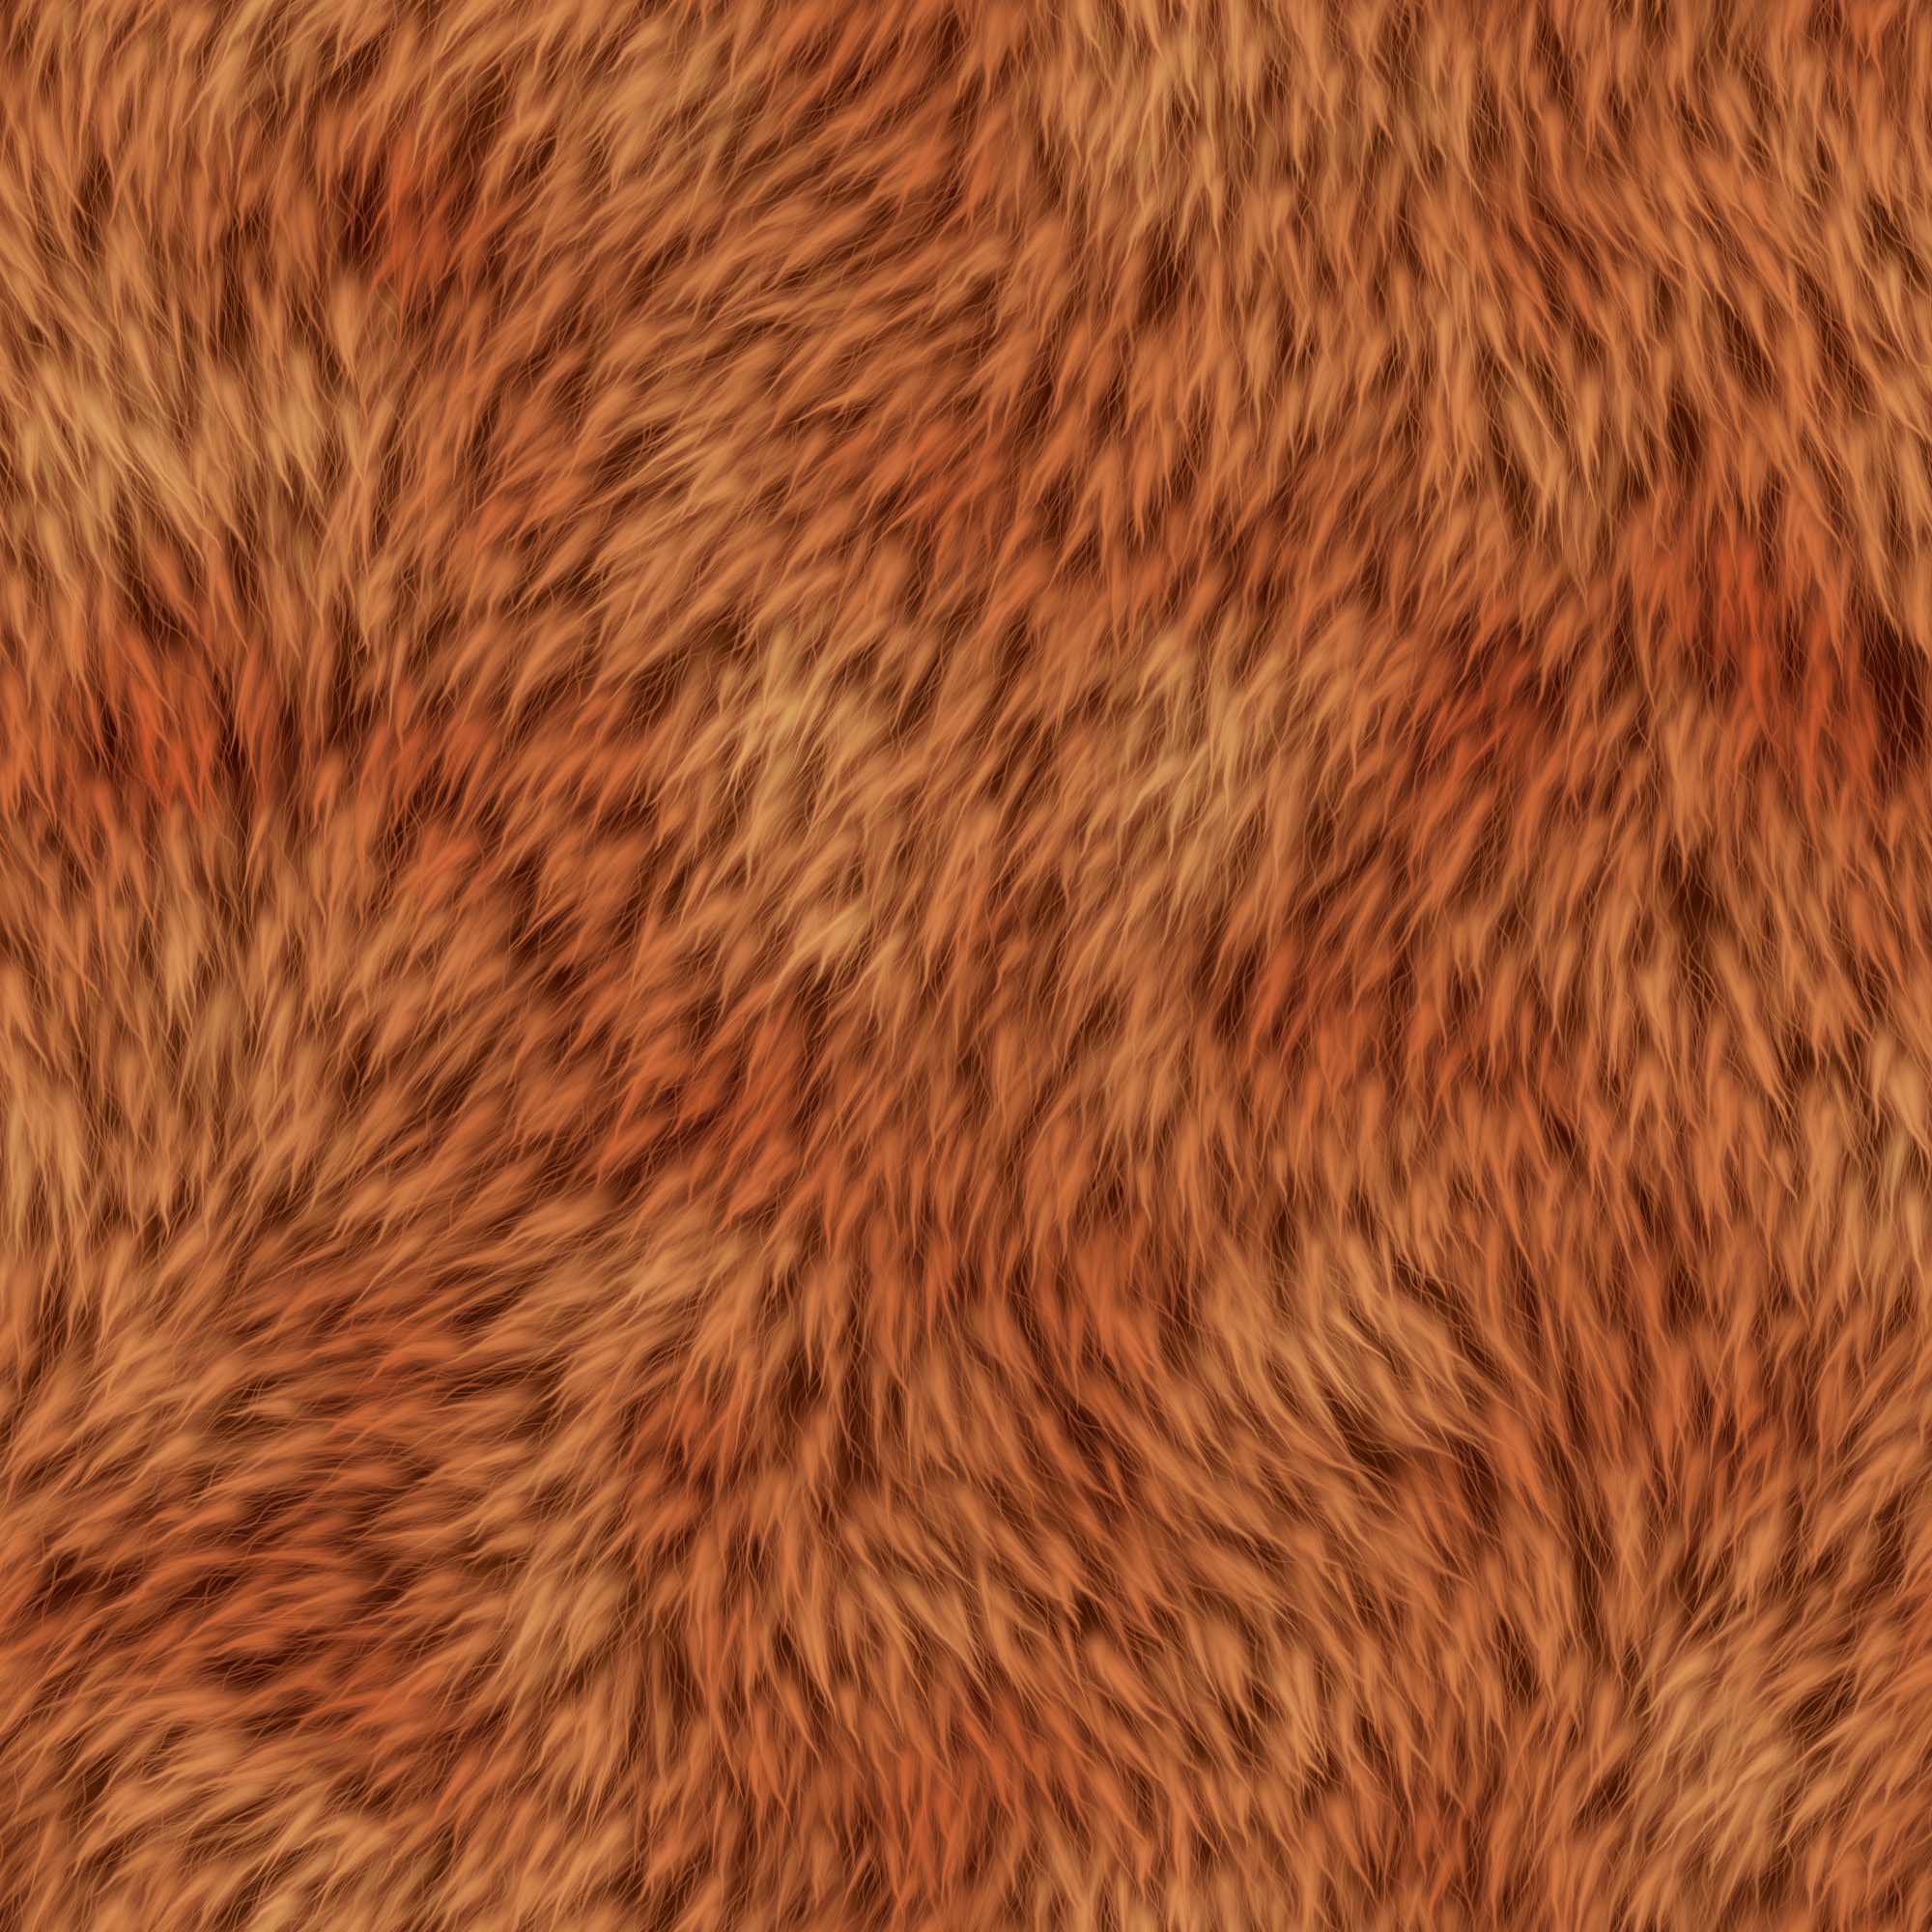 3d Cheetah Wallpaper Great Seamless Images For A Fur Texture Or Fur Background